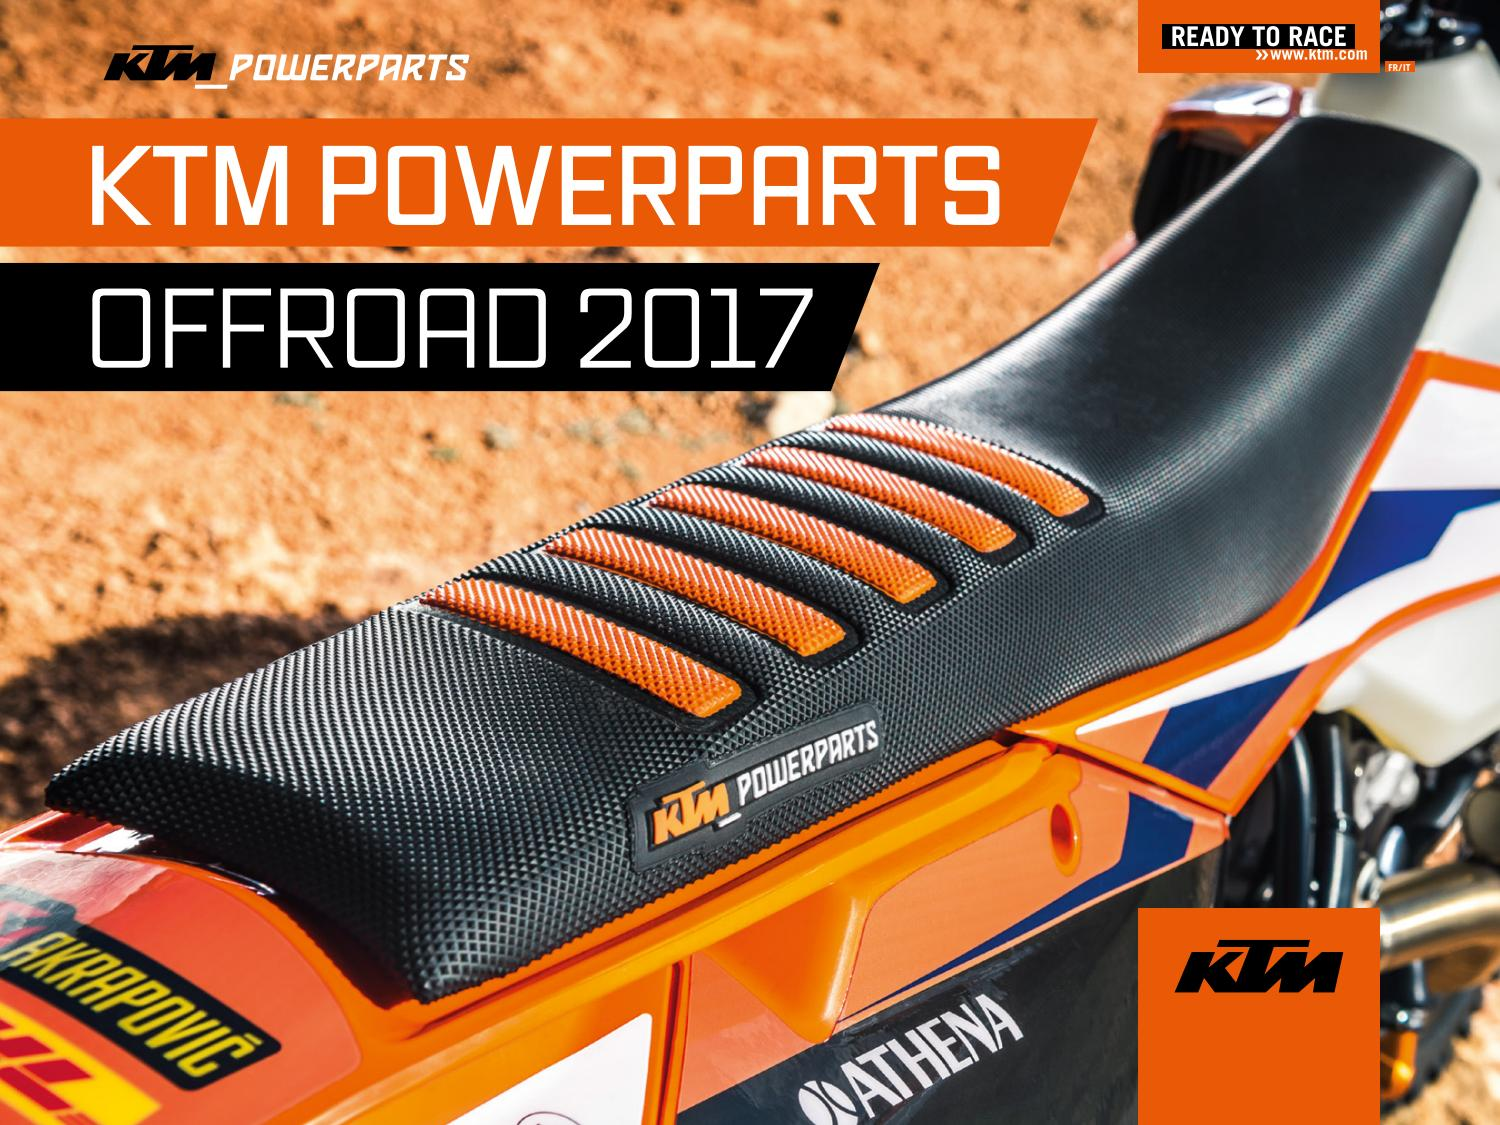 Ktm Powerparts Offroad 2017 Français Italiano By Ktm Group